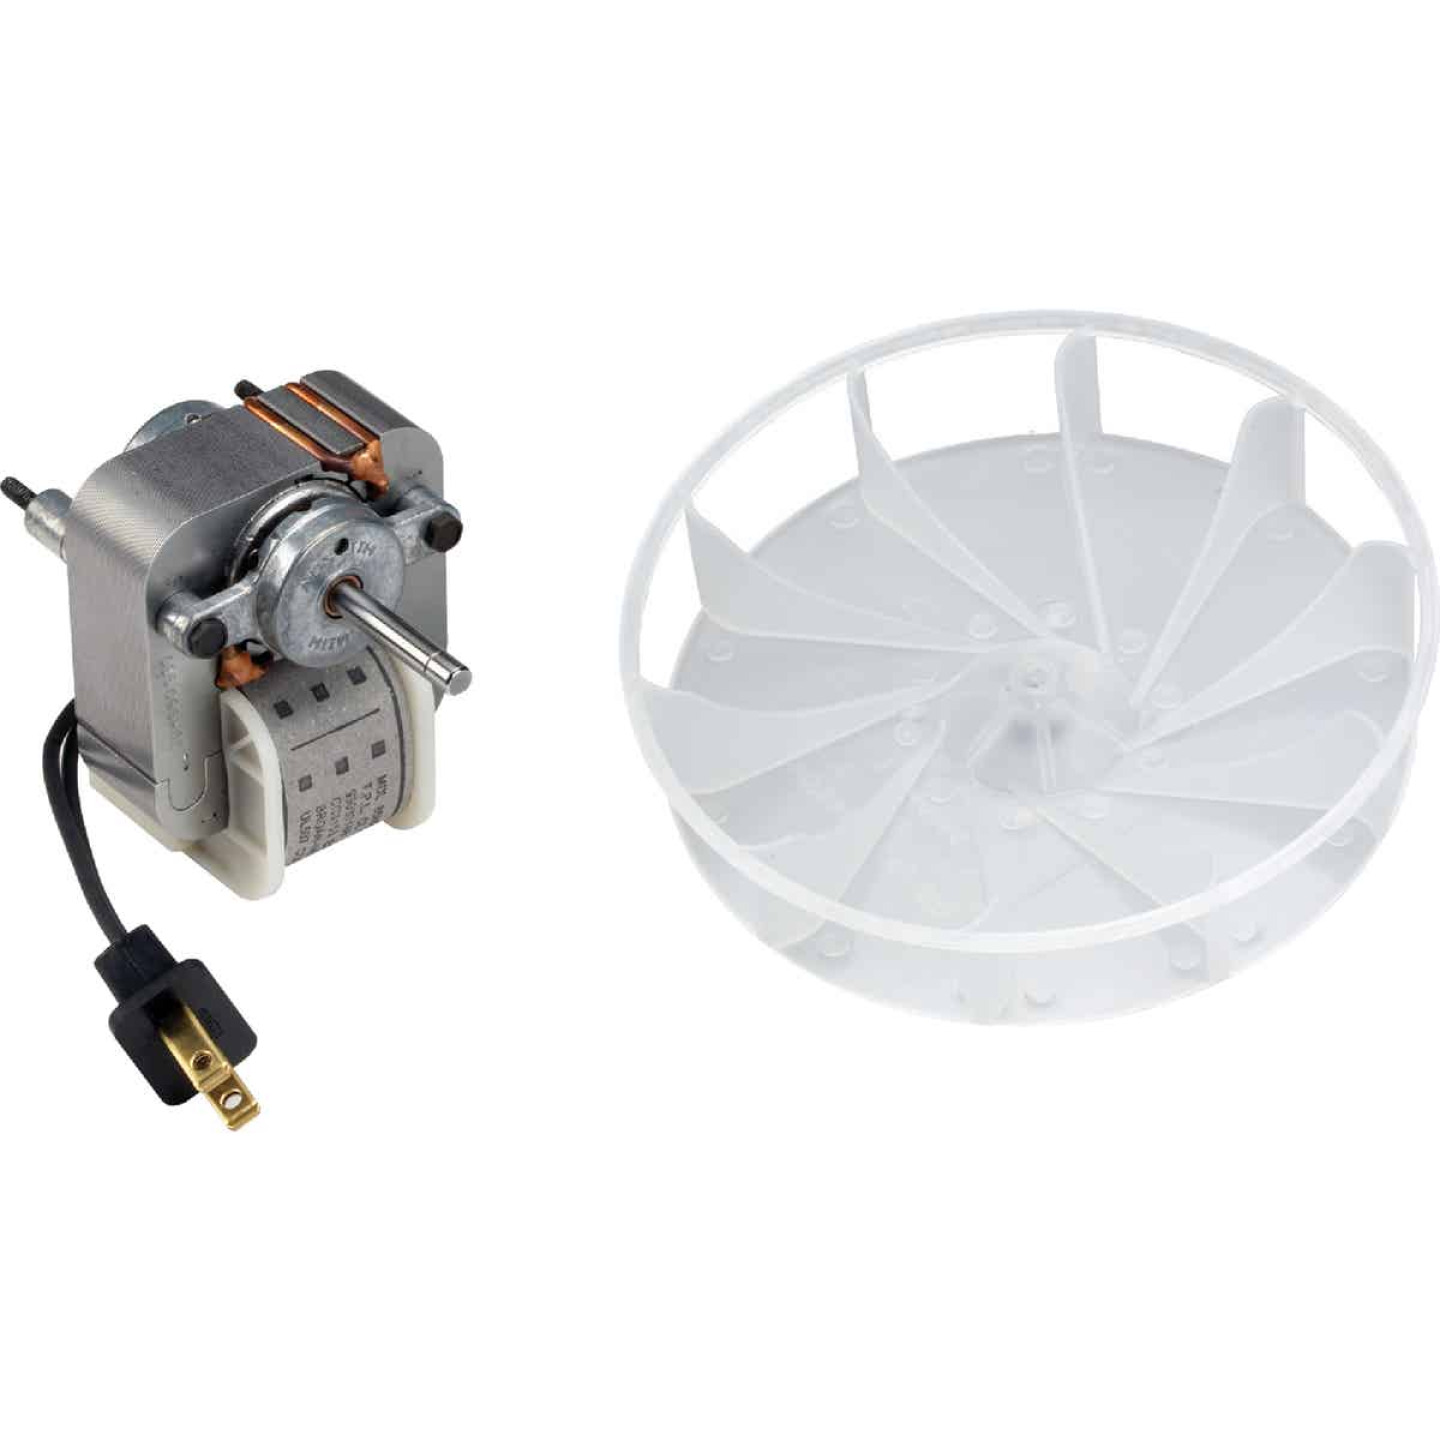 Broan 120V 70 CFM Replacement Exhaust Fan Motor Image 1